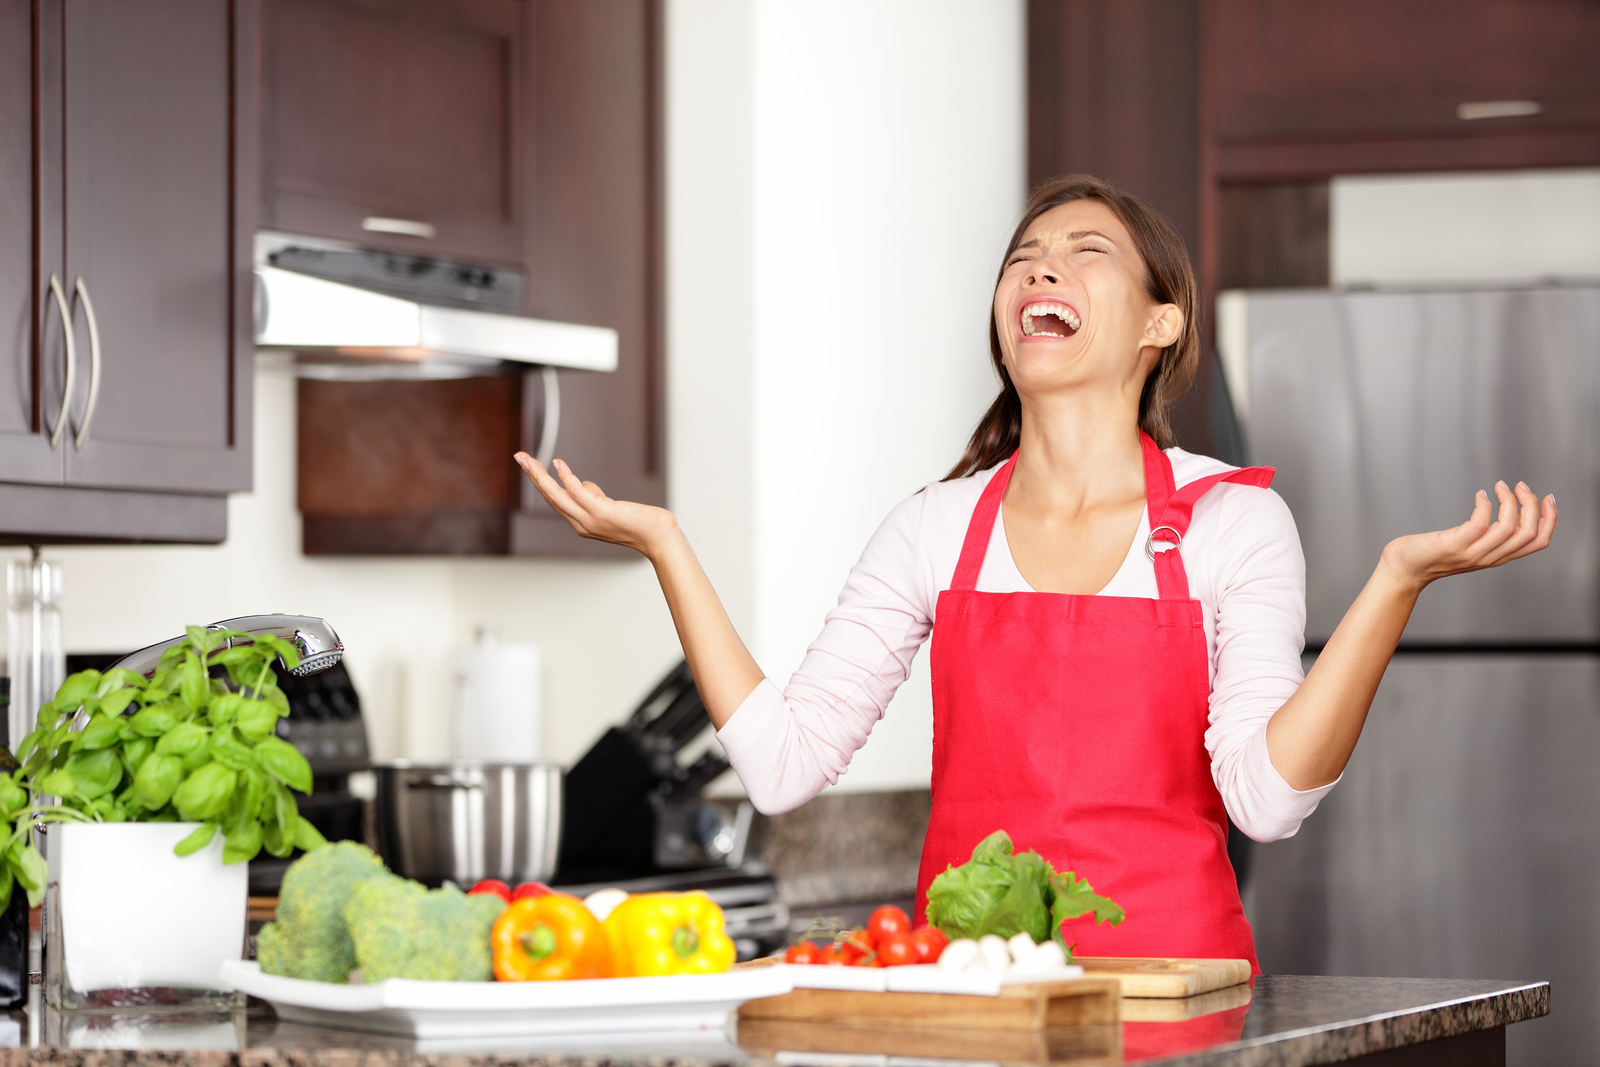 bigstock-Funny-Cooking-Image-37902481 736f7